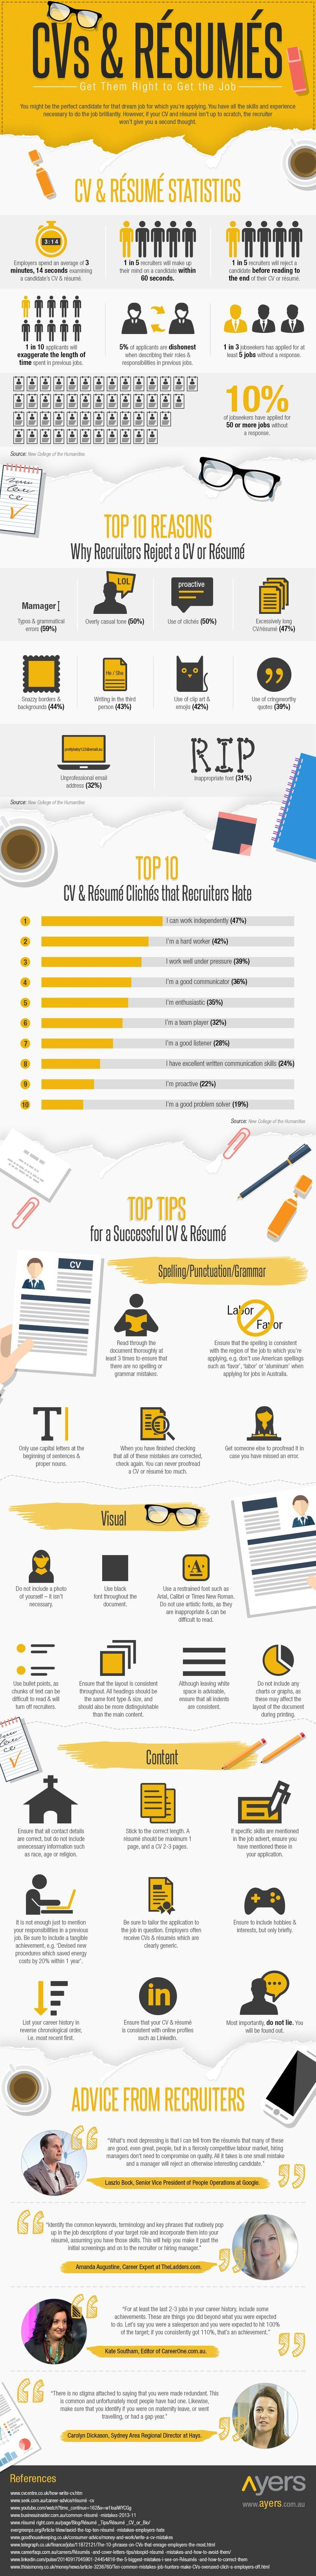 the perfect resume get it right to get the job infographic